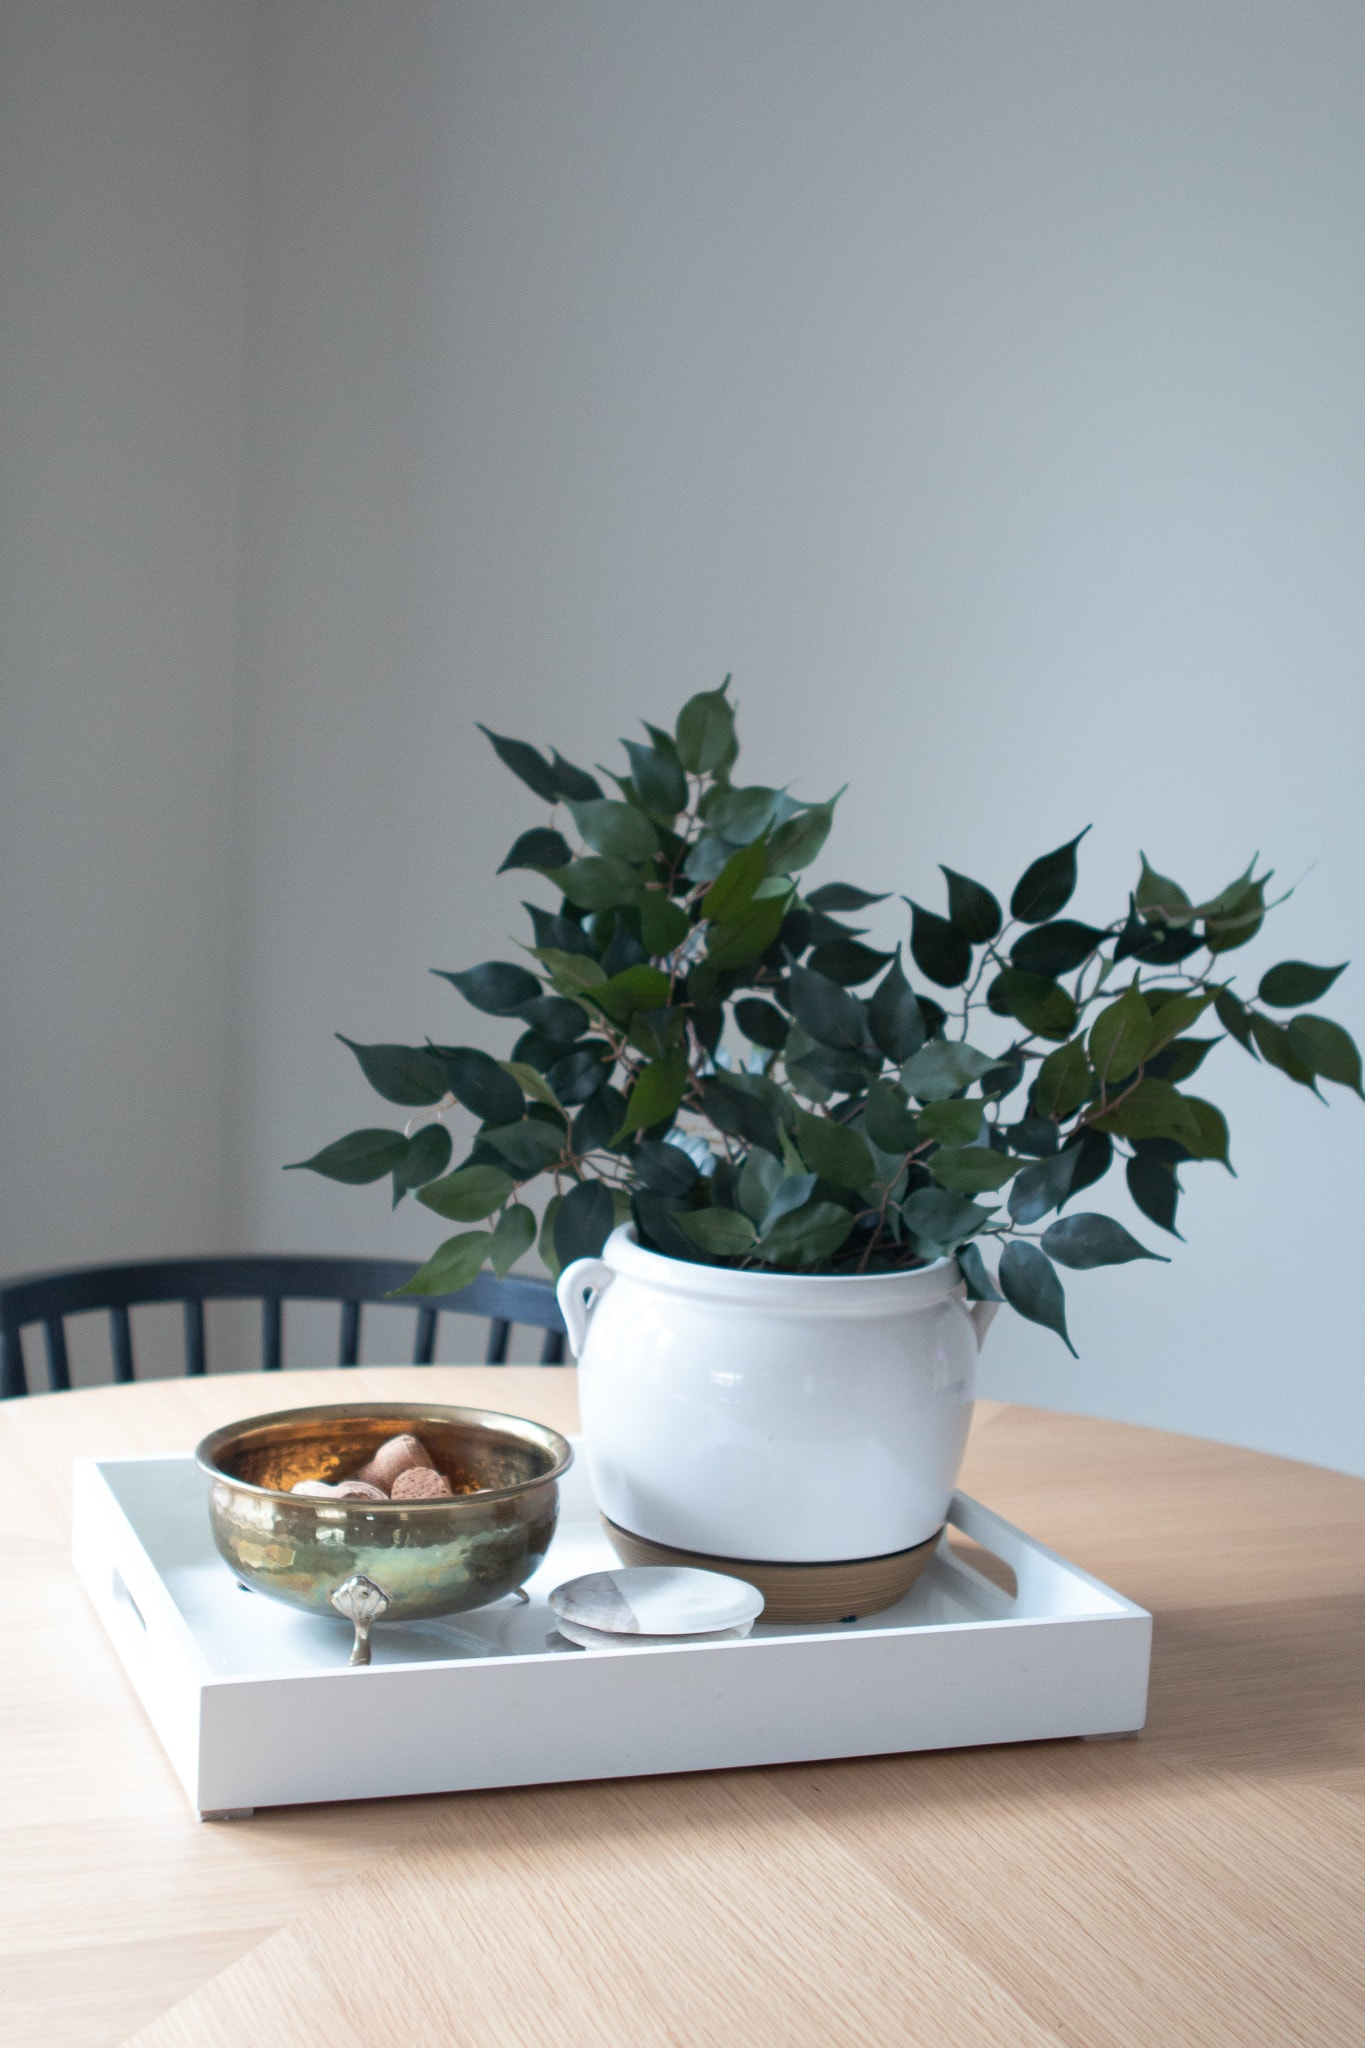 New vase from Lowe's